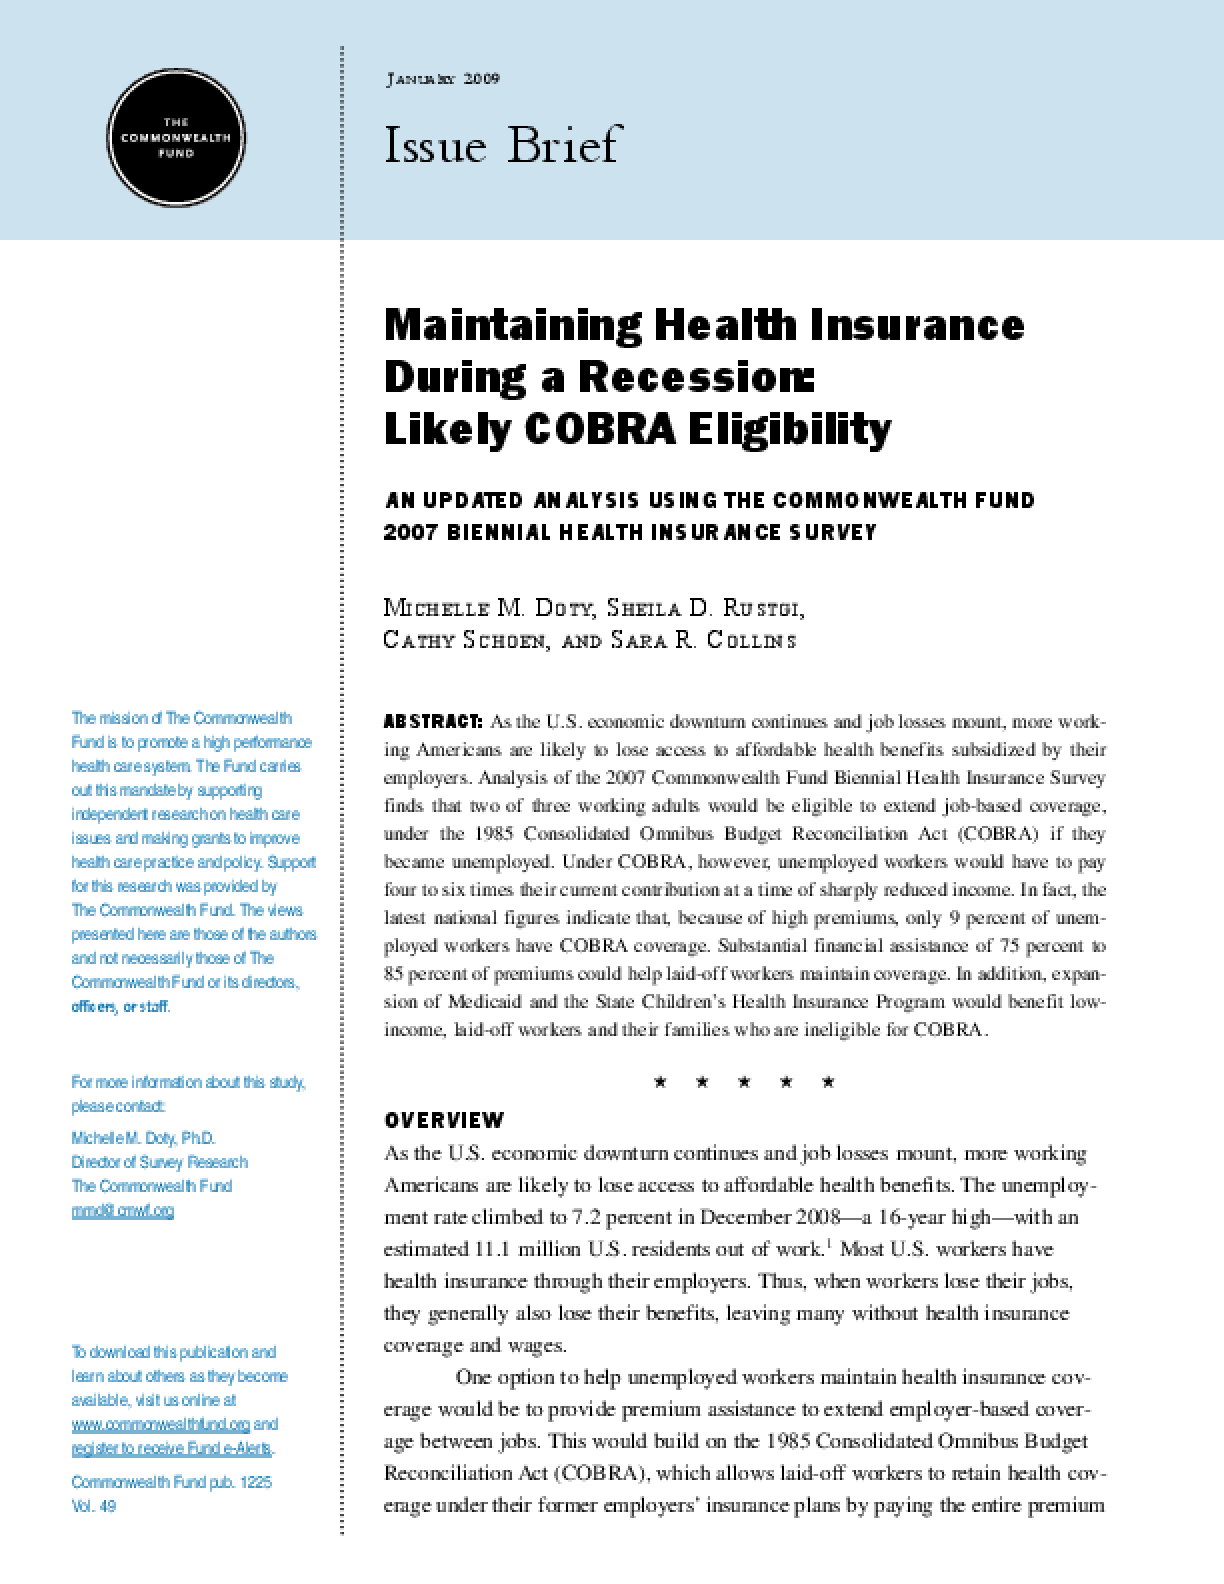 Maintaining Health Insurance During a Recession: Likely COBRA Eligibility